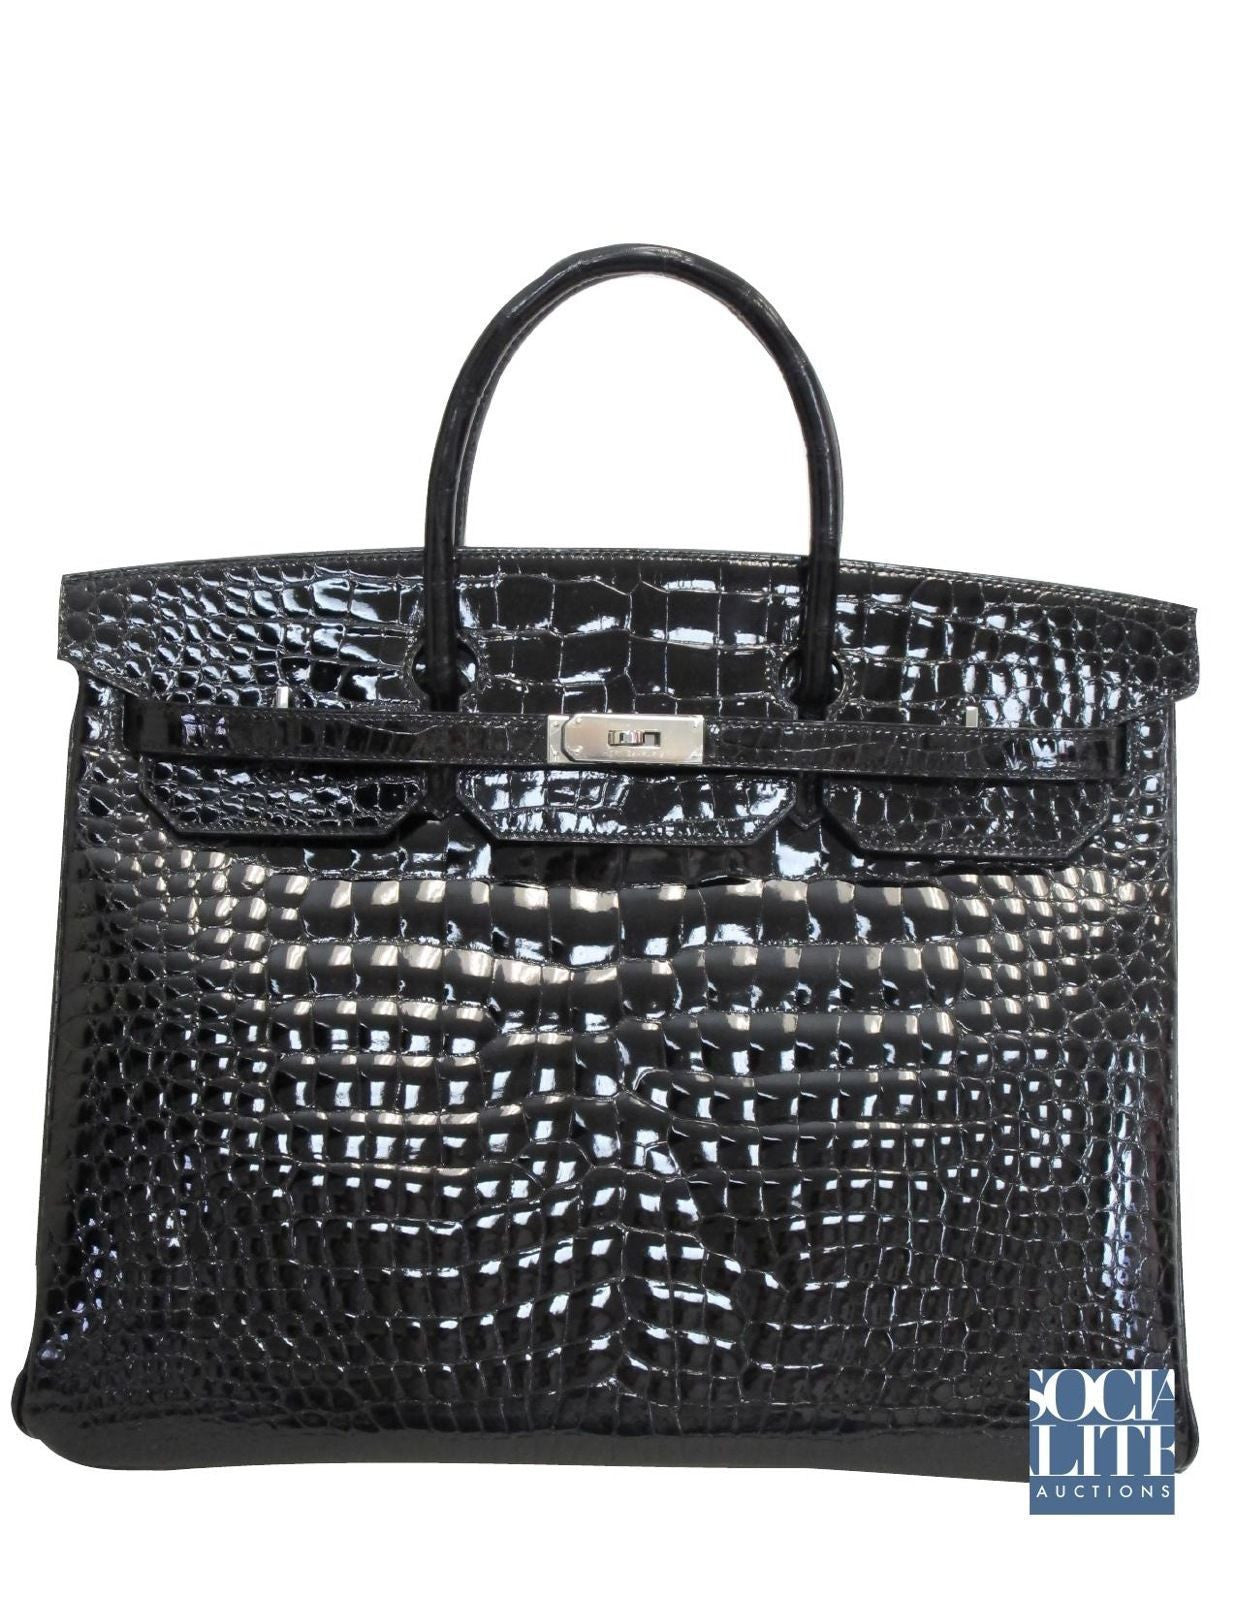 HERMES Birkin 40cm Black Porosus Crocodile with Palladium Hardware